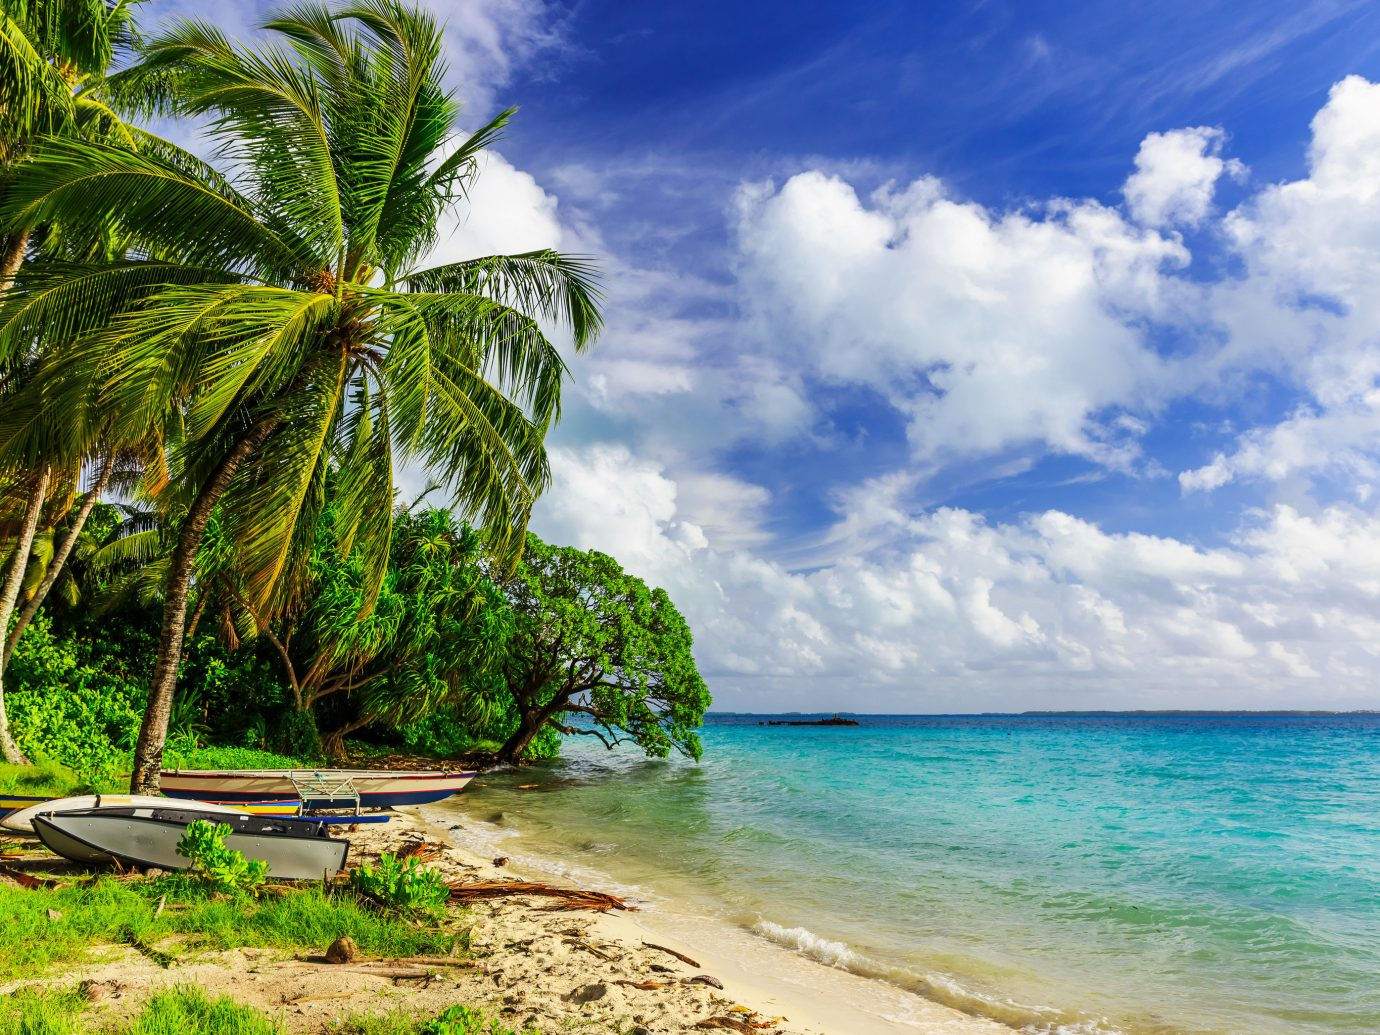 Trip Ideas outdoor sky water tree Beach shore Sea body of water Ocean geographical feature caribbean Coast tropics vacation horizon arecales Nature bay Island Lagoon cape wave palm family islet cove sandy swimming day